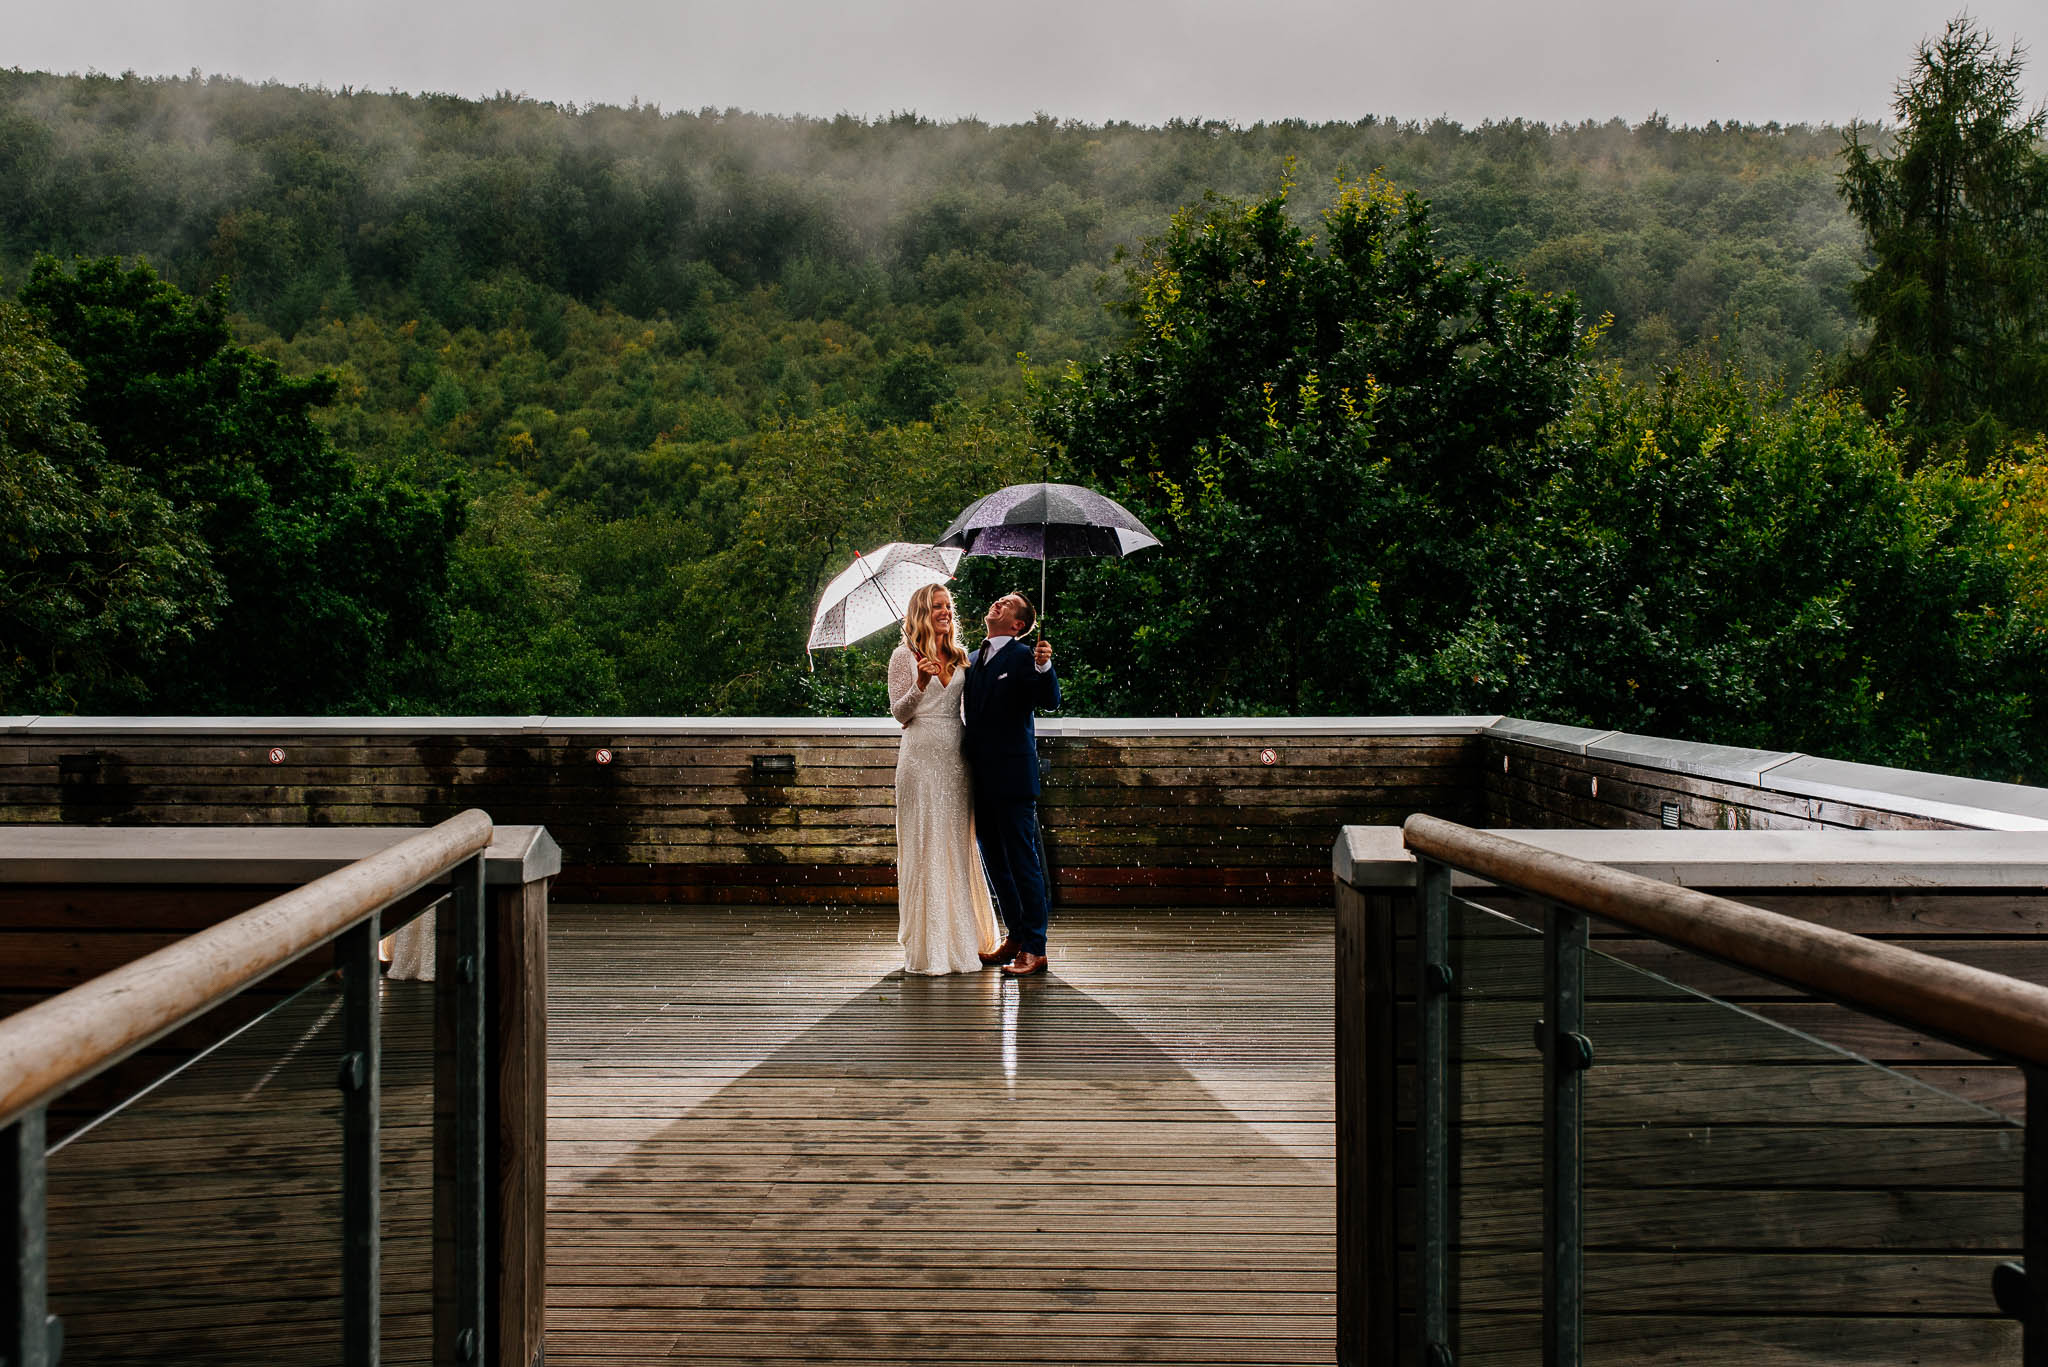 Wet rainy weather wedding day tips and tricks